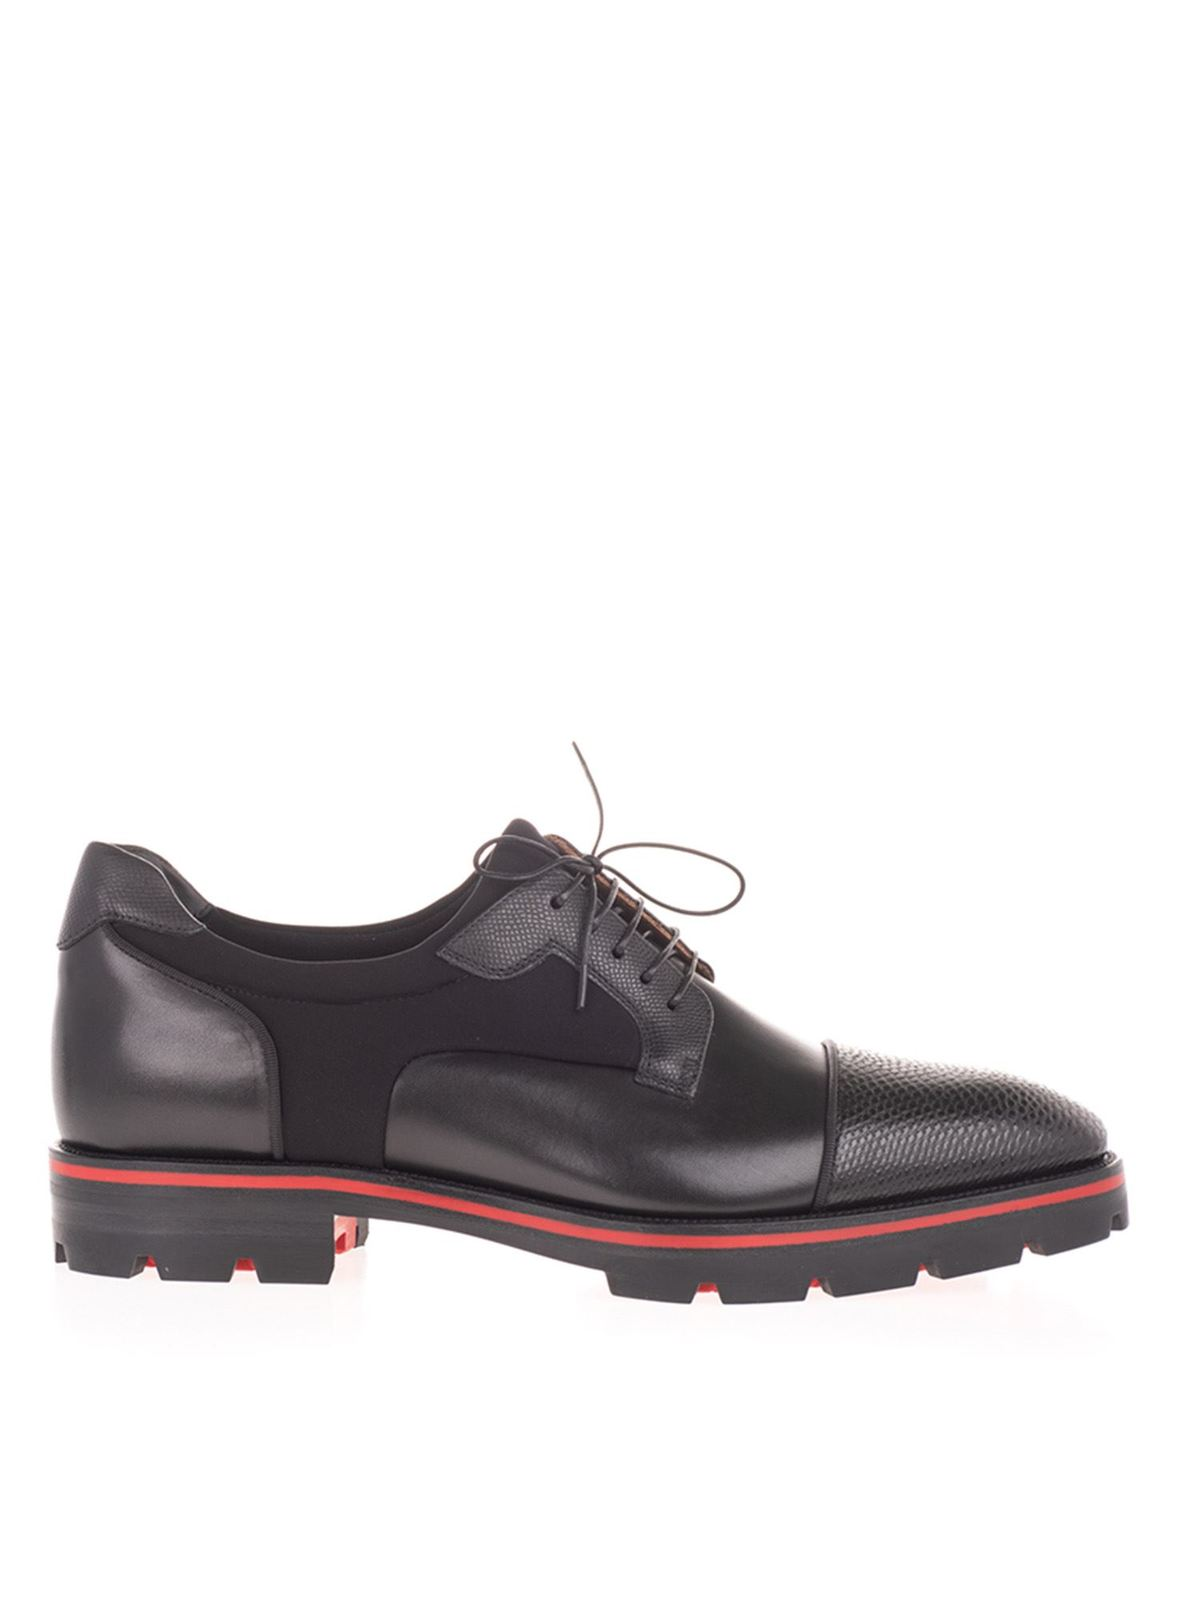 Christian Louboutin - Derby shoes in